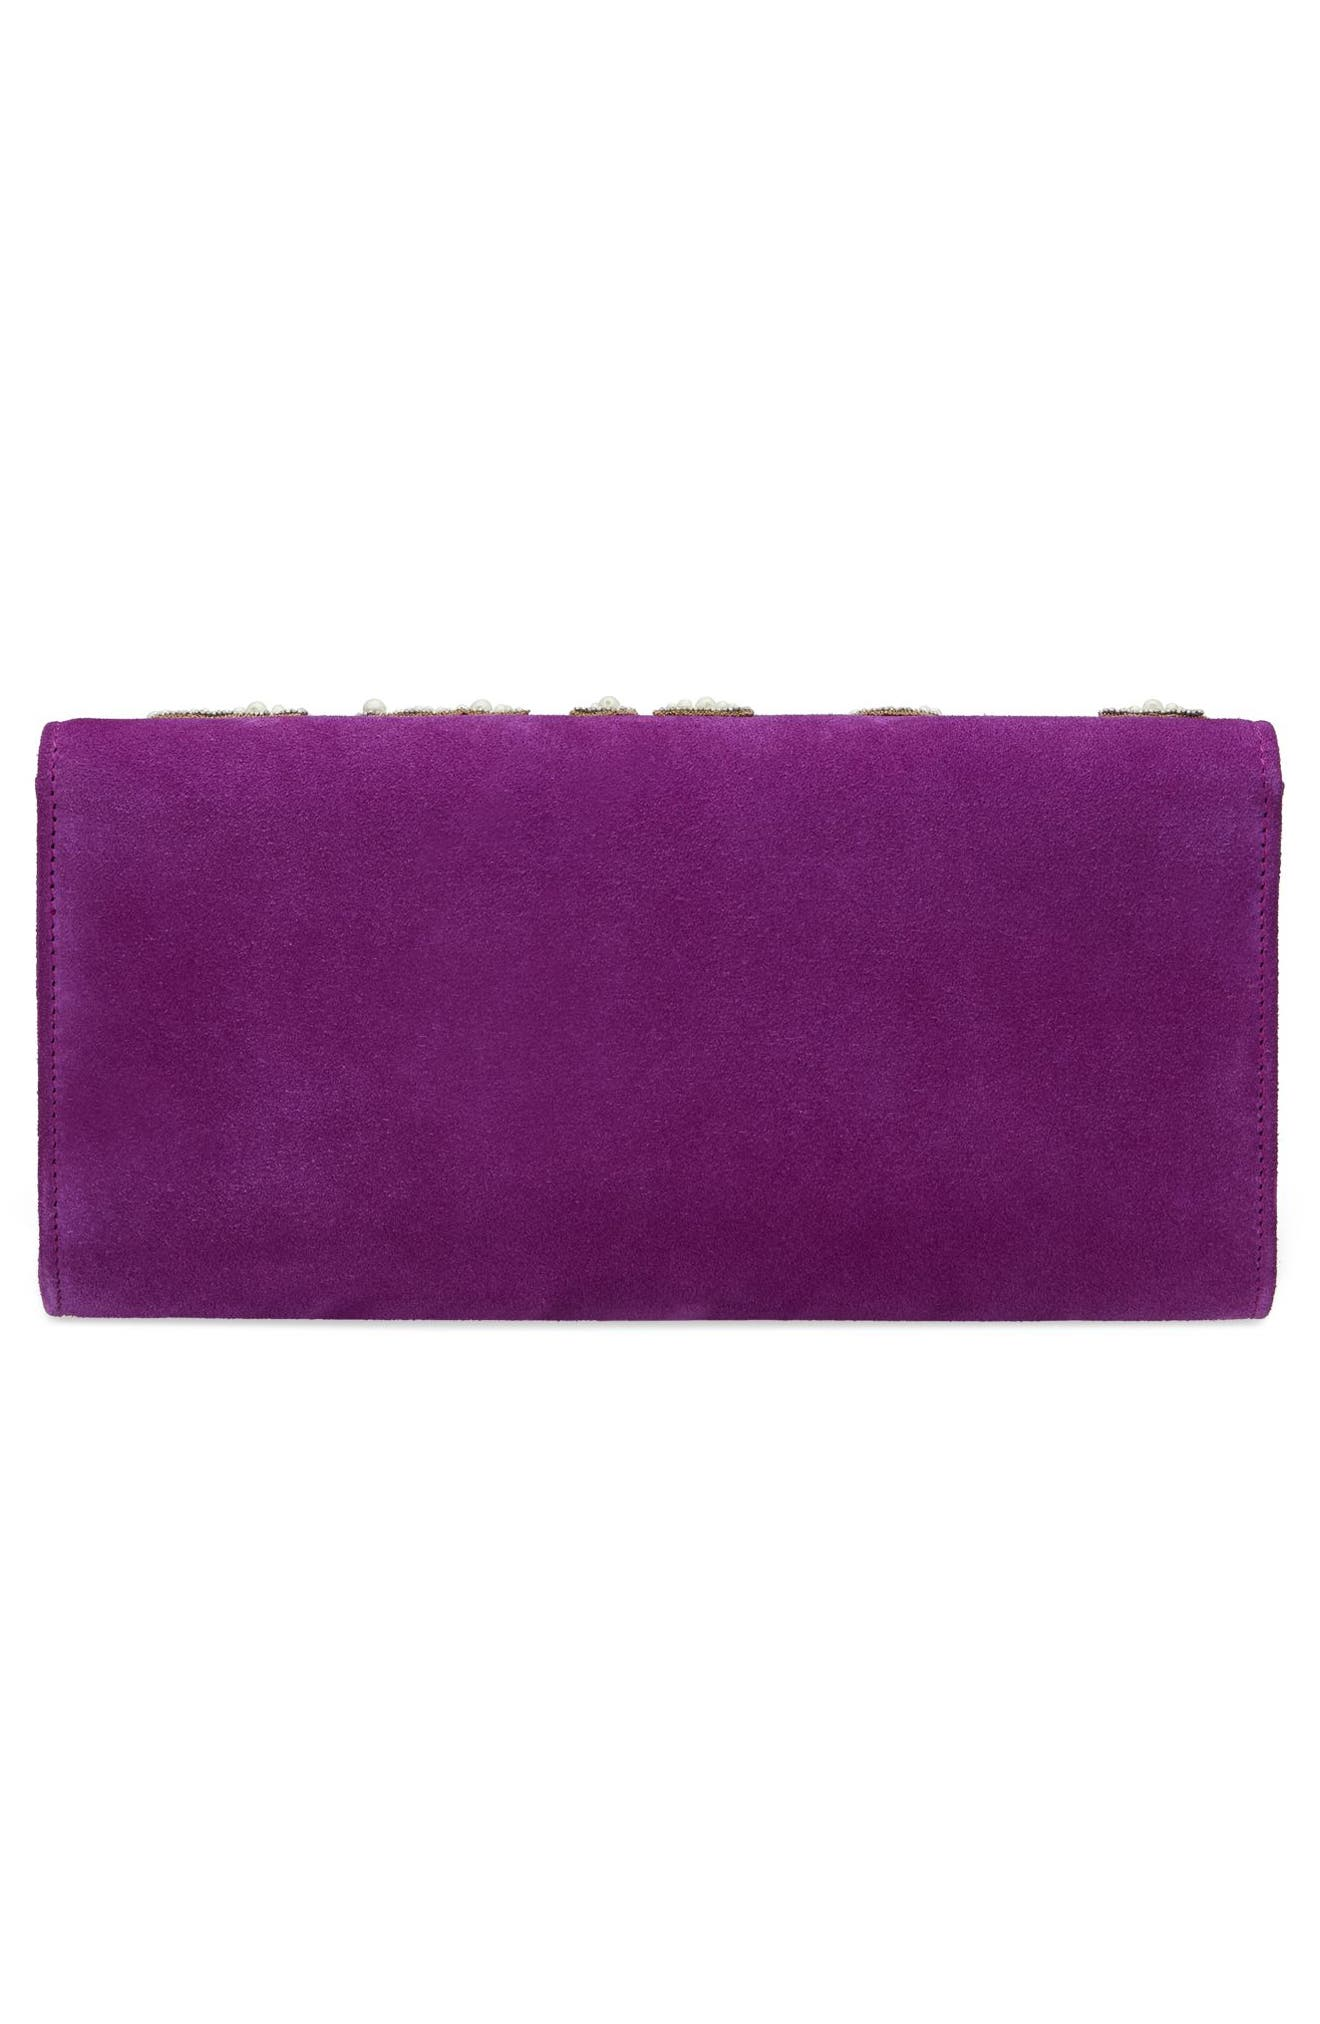 Dionysus Suede Clutch,                             Alternate thumbnail 2, color,                             559